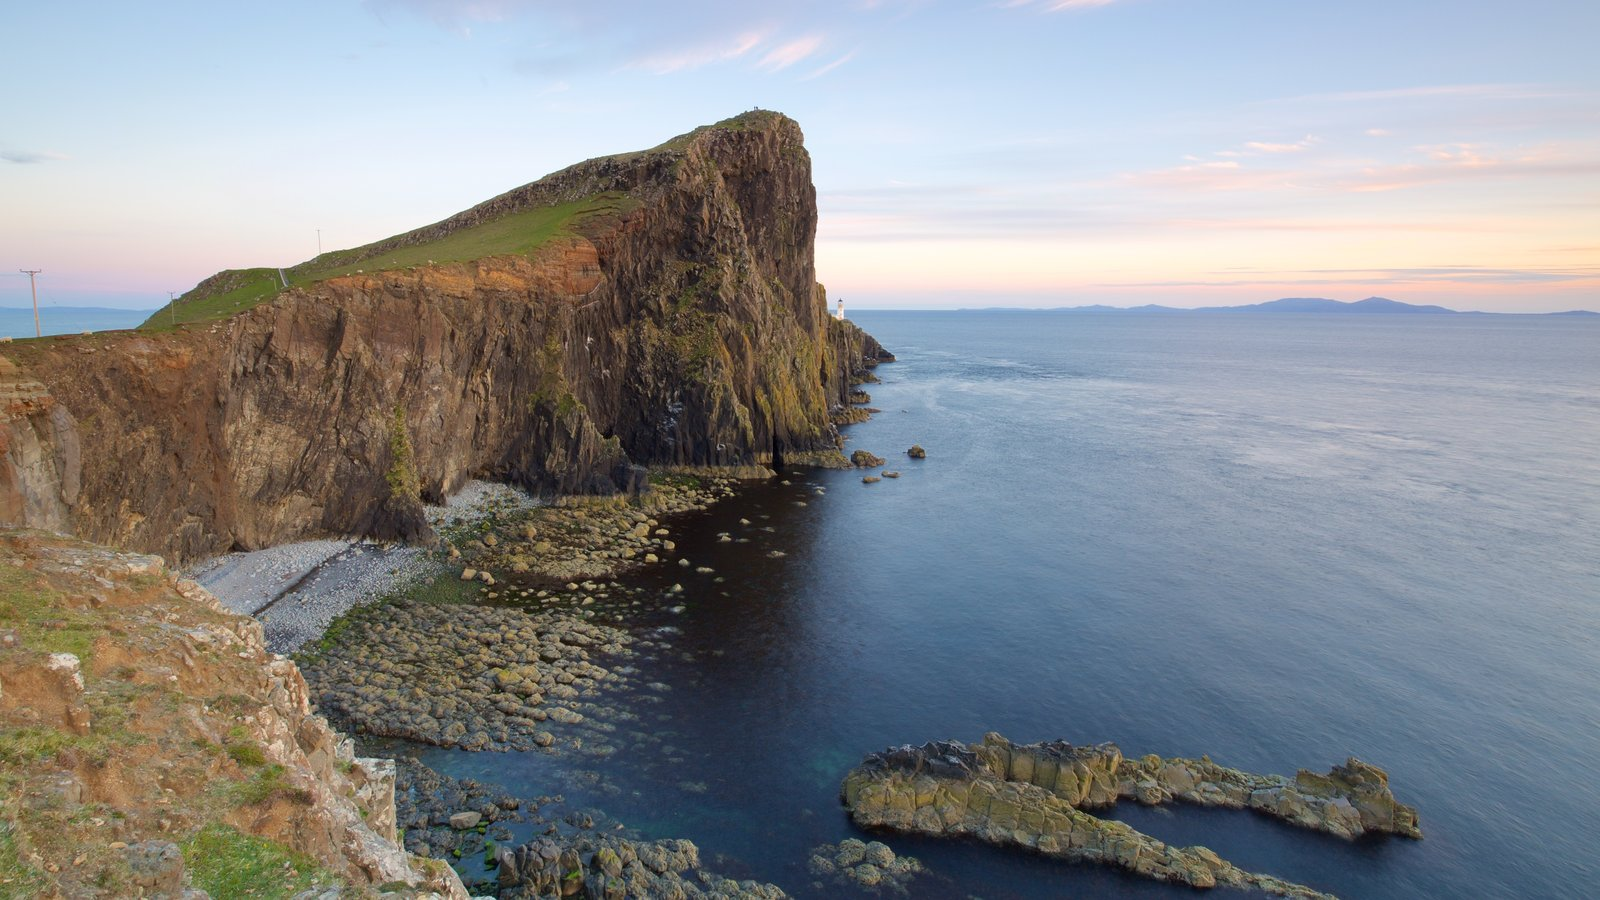 Isle of Skye featuring rugged coastline, mountains and a lighthouse